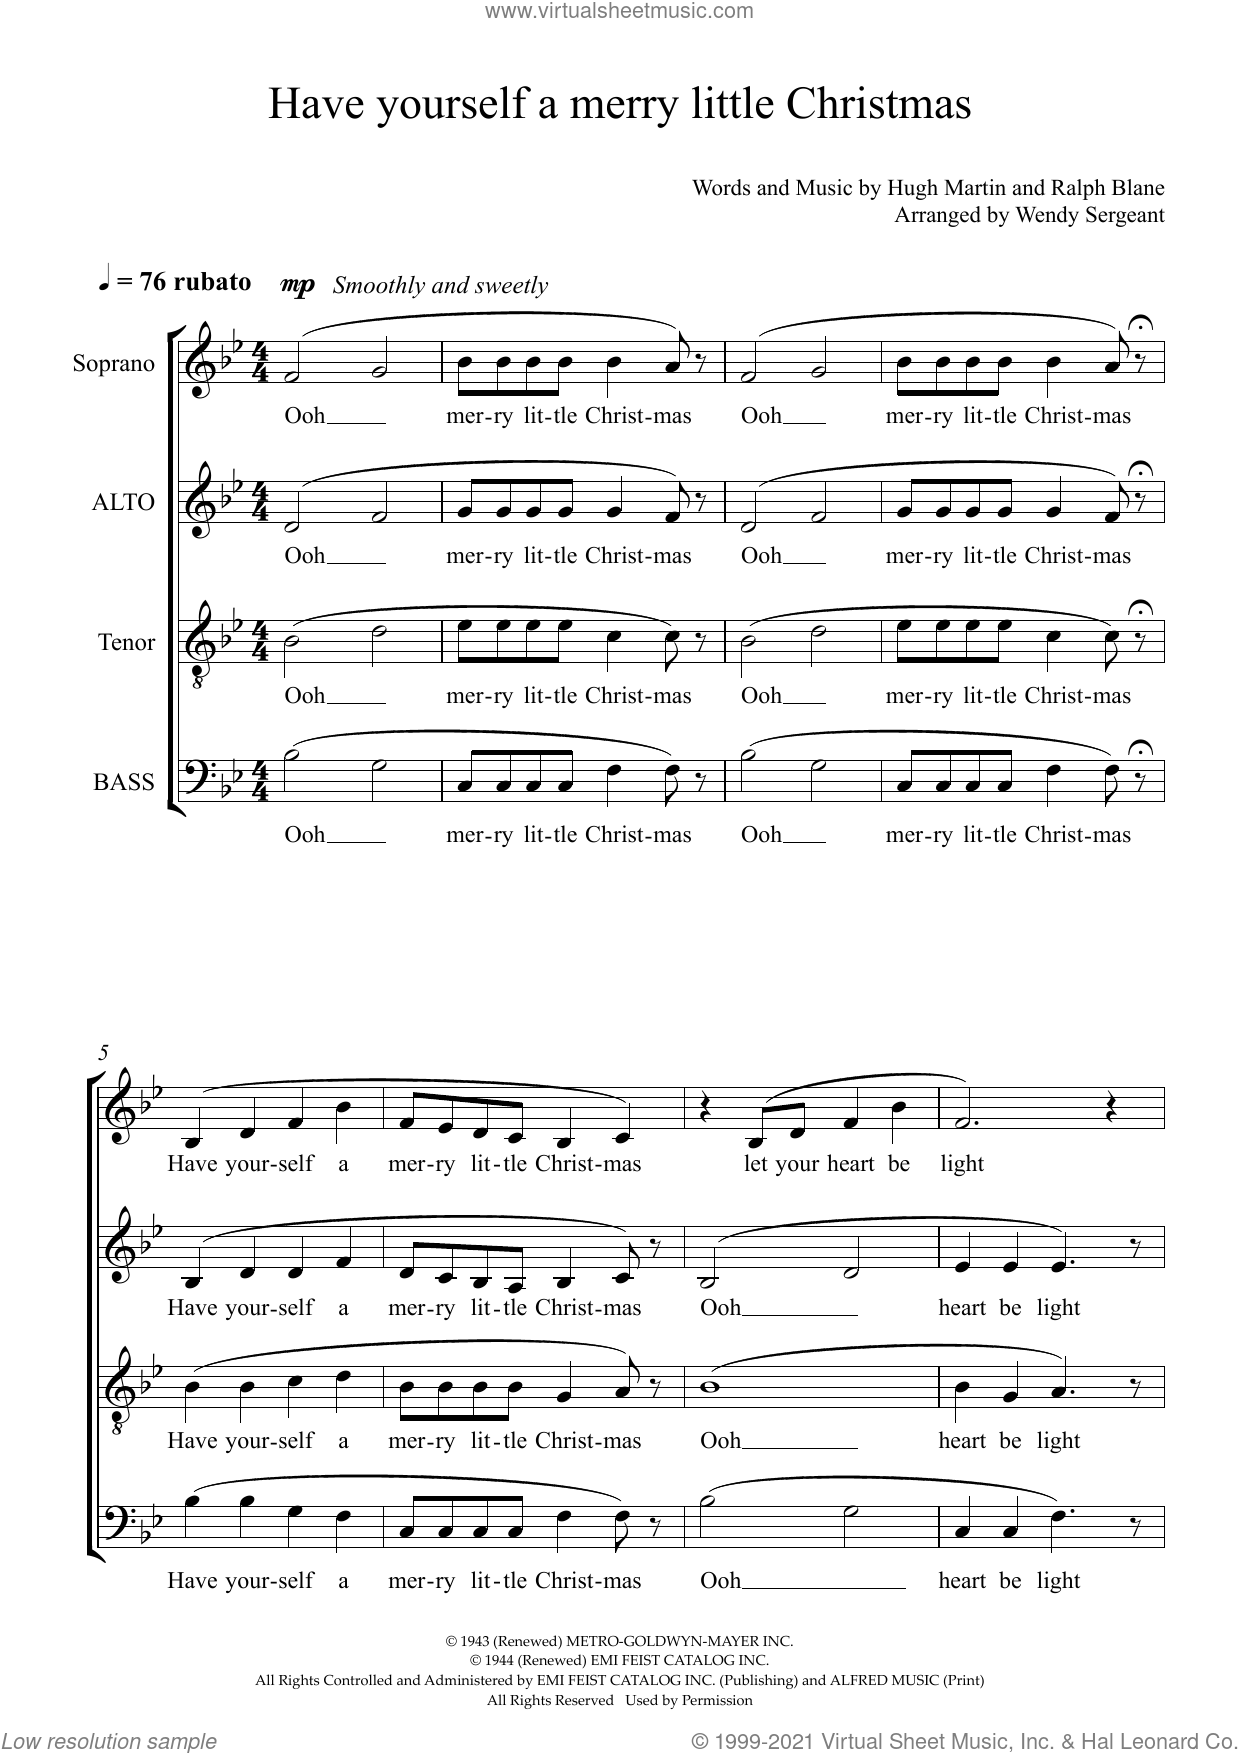 Have Yourself a Merry Little Christmas (arr. Wendy Sergeant) sheet music for choir (SATB: soprano, alto, tenor, bass) by Frank Sinatra, Wendy Sergeant, Hugh Martin and Ralph Blane, intermediate skill level